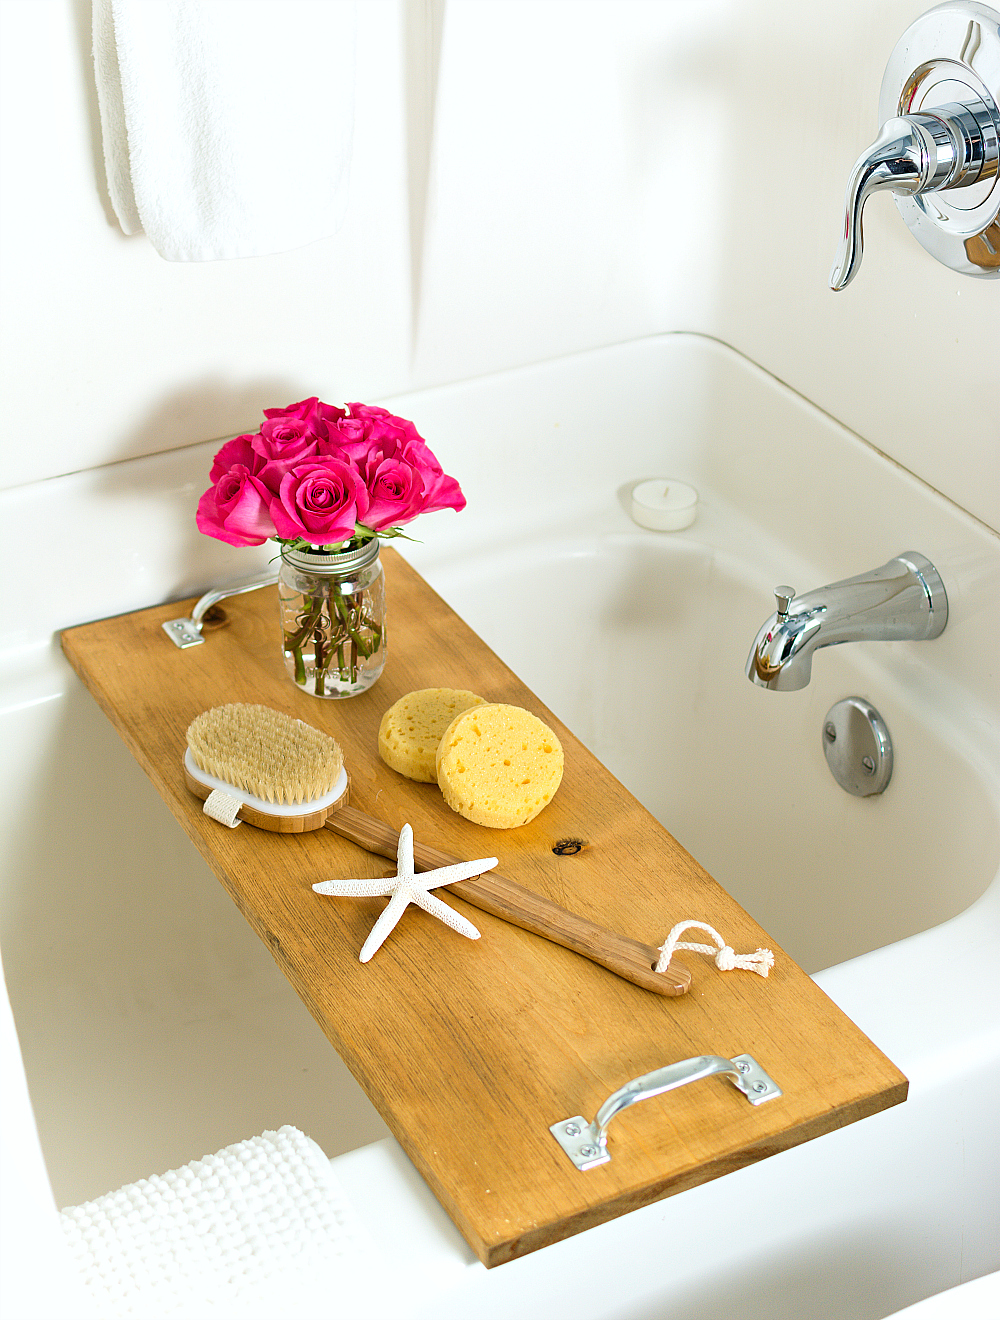 bath-caddy-diy-wood (9 of 12)